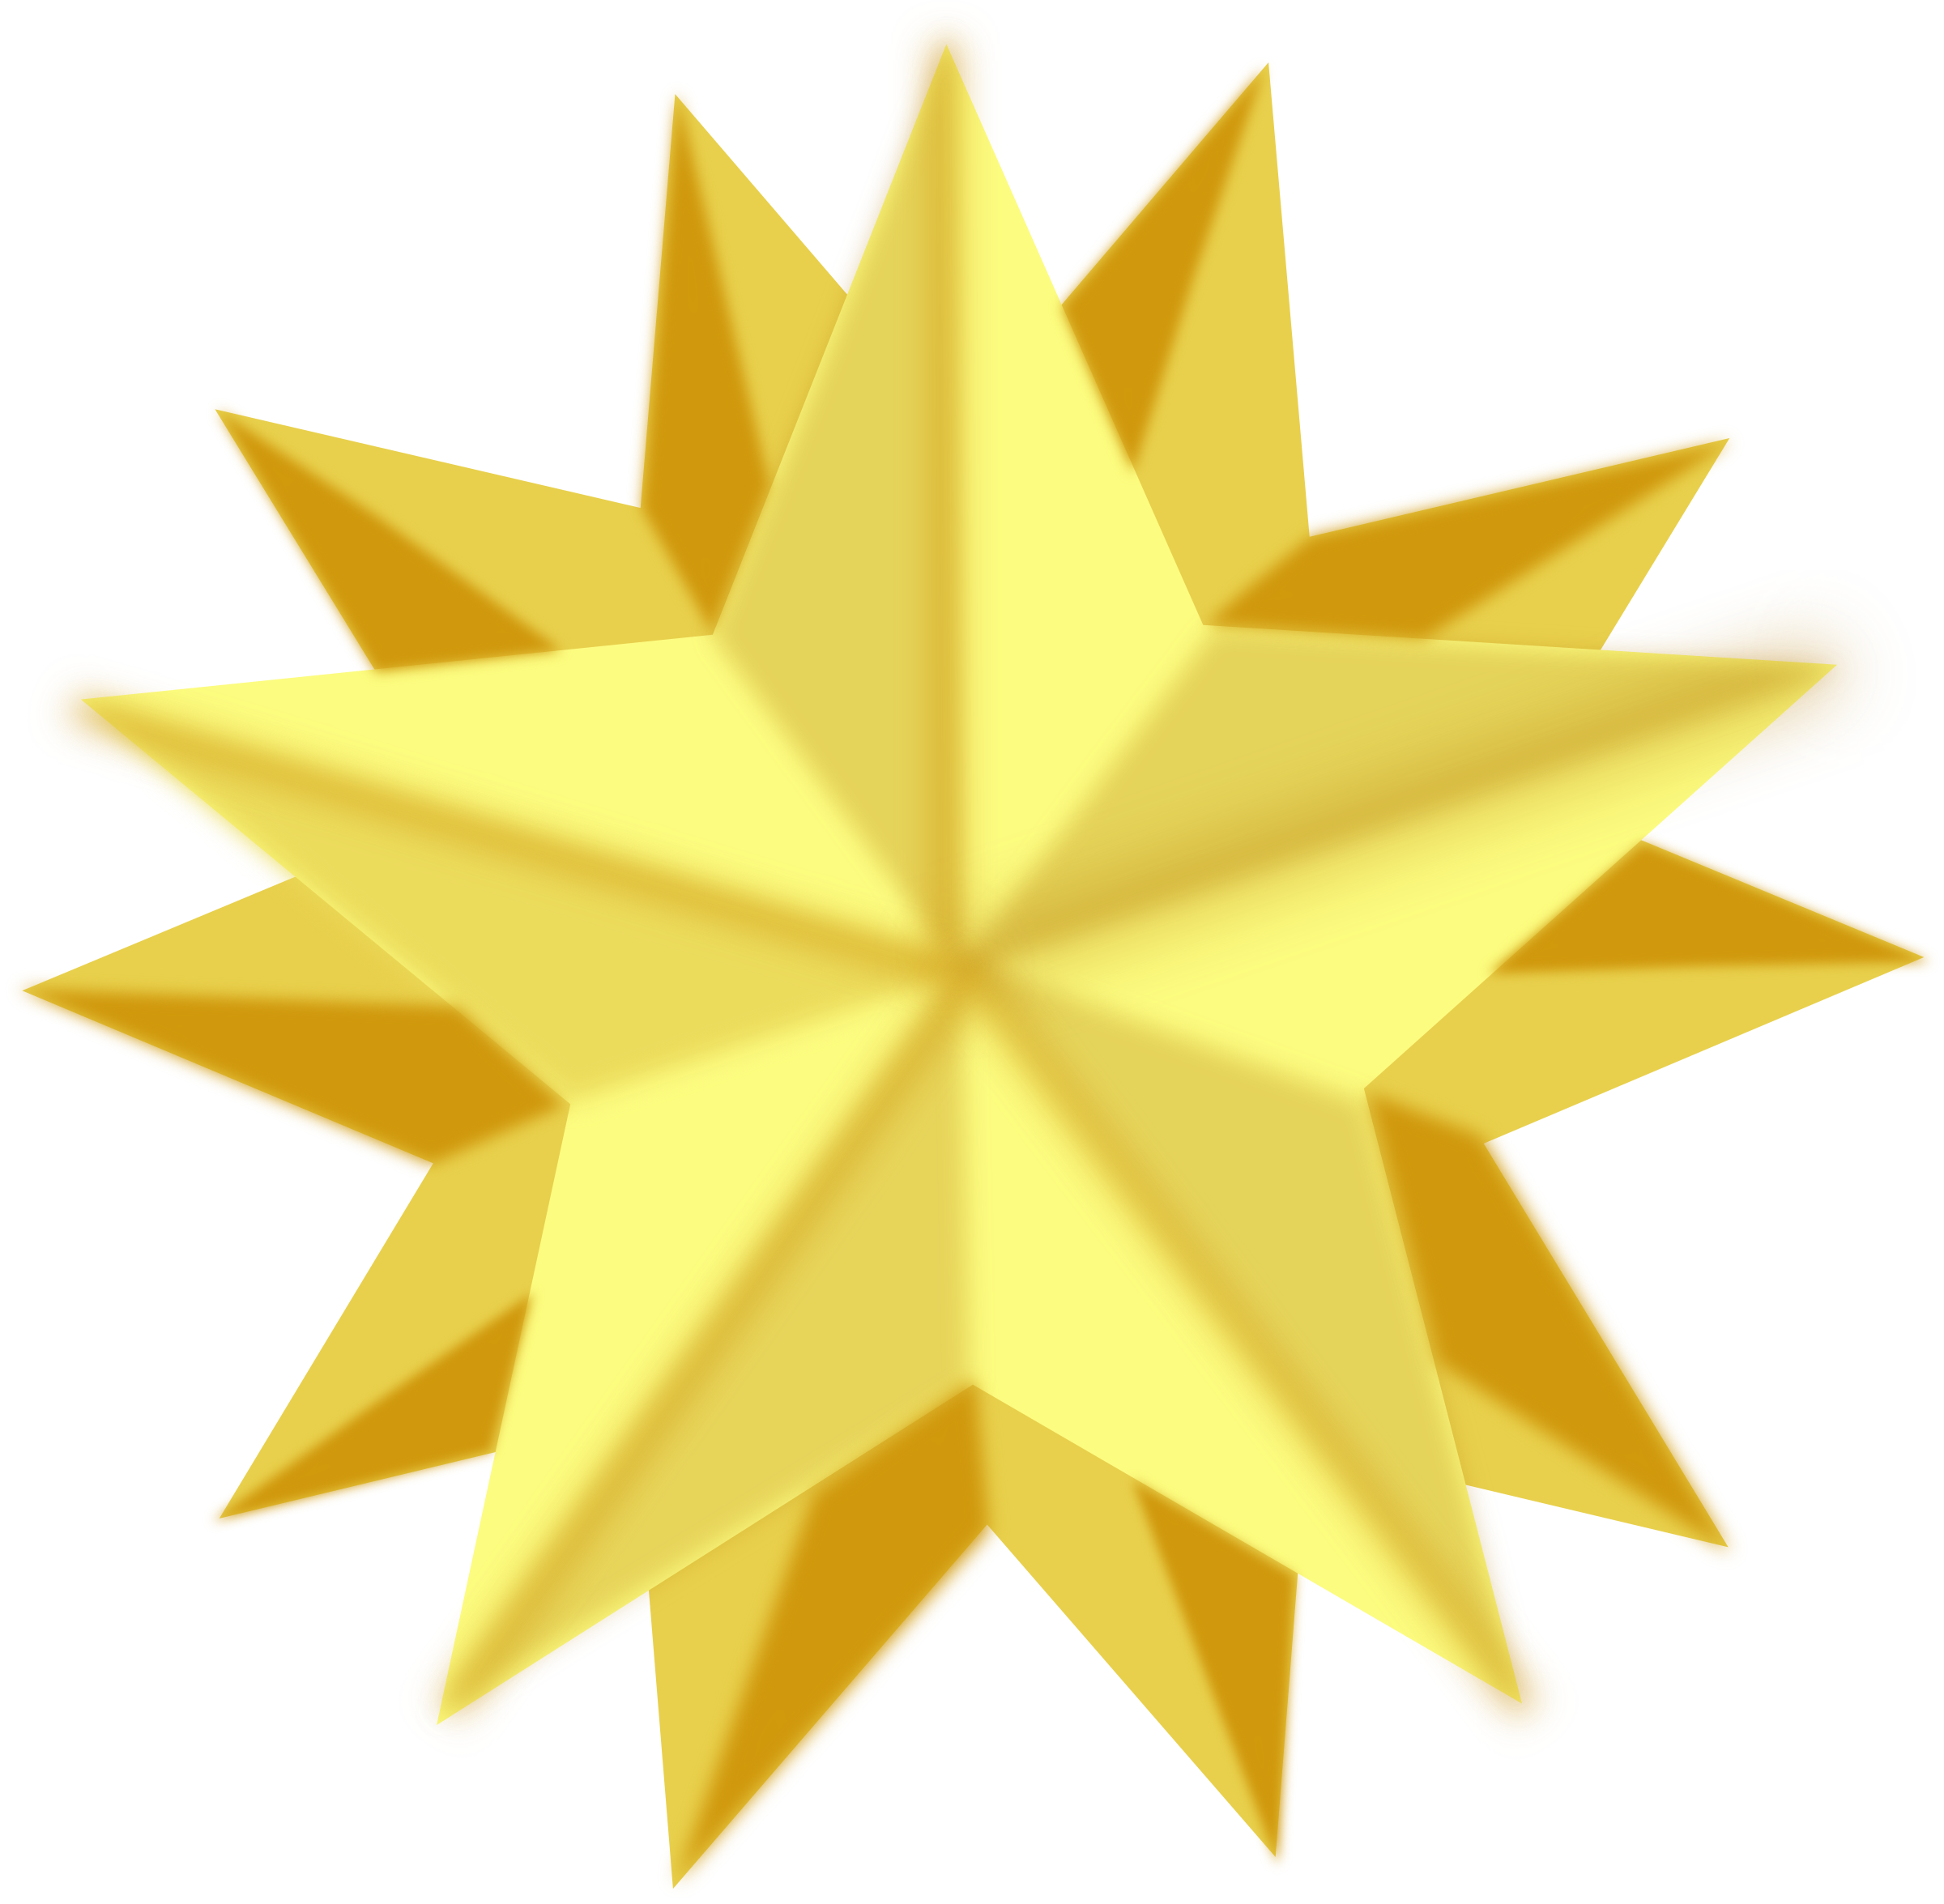 Star gif clipart svg black and white stock Clipart - Golden star svg black and white stock